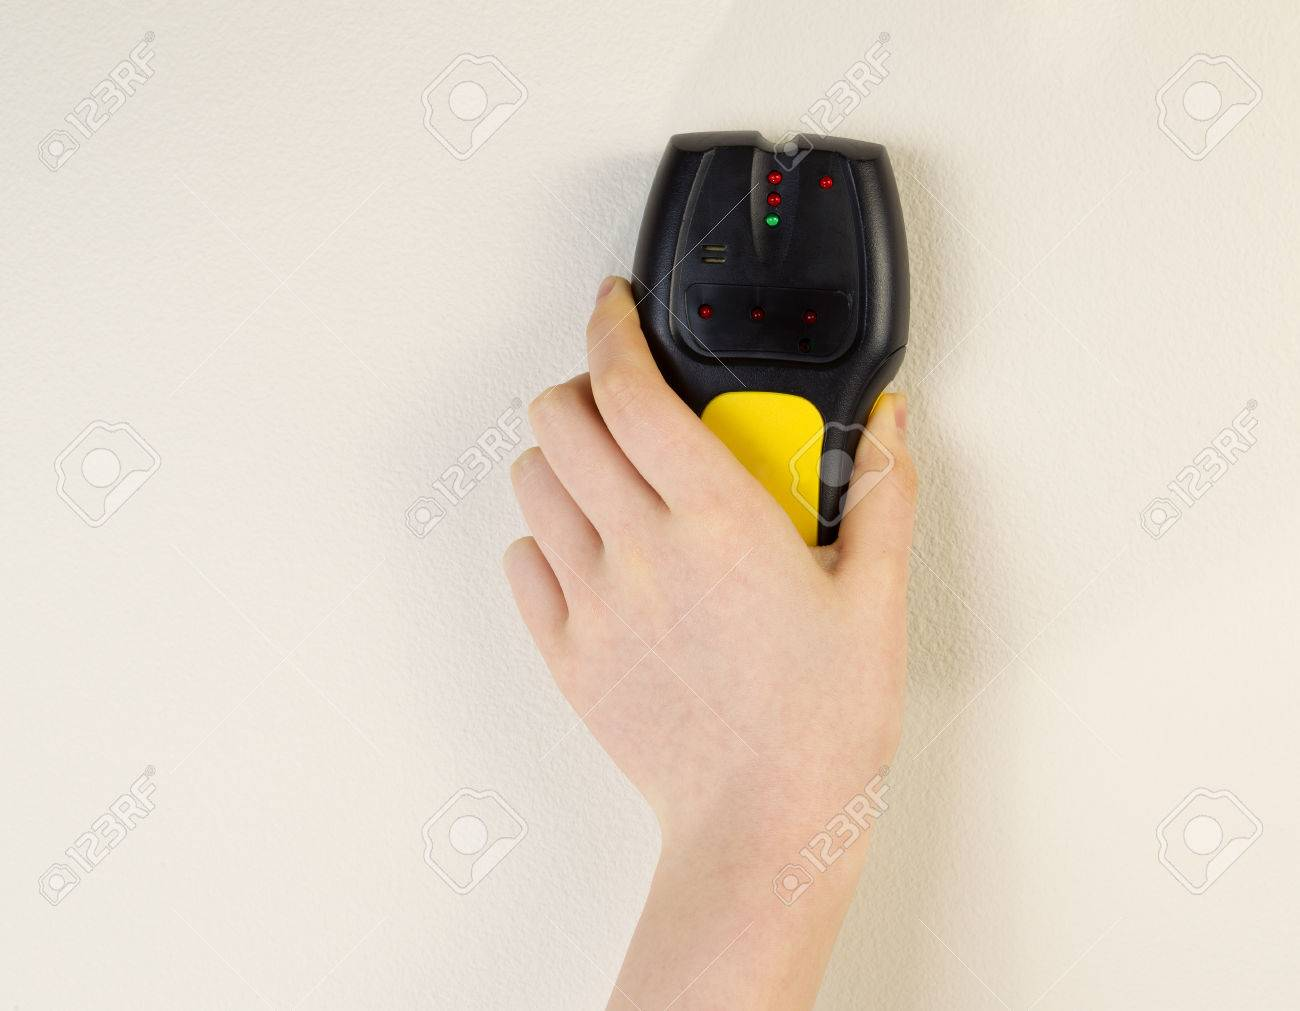 Photo of female hand holding stud finder against interior home white wall - 28101788